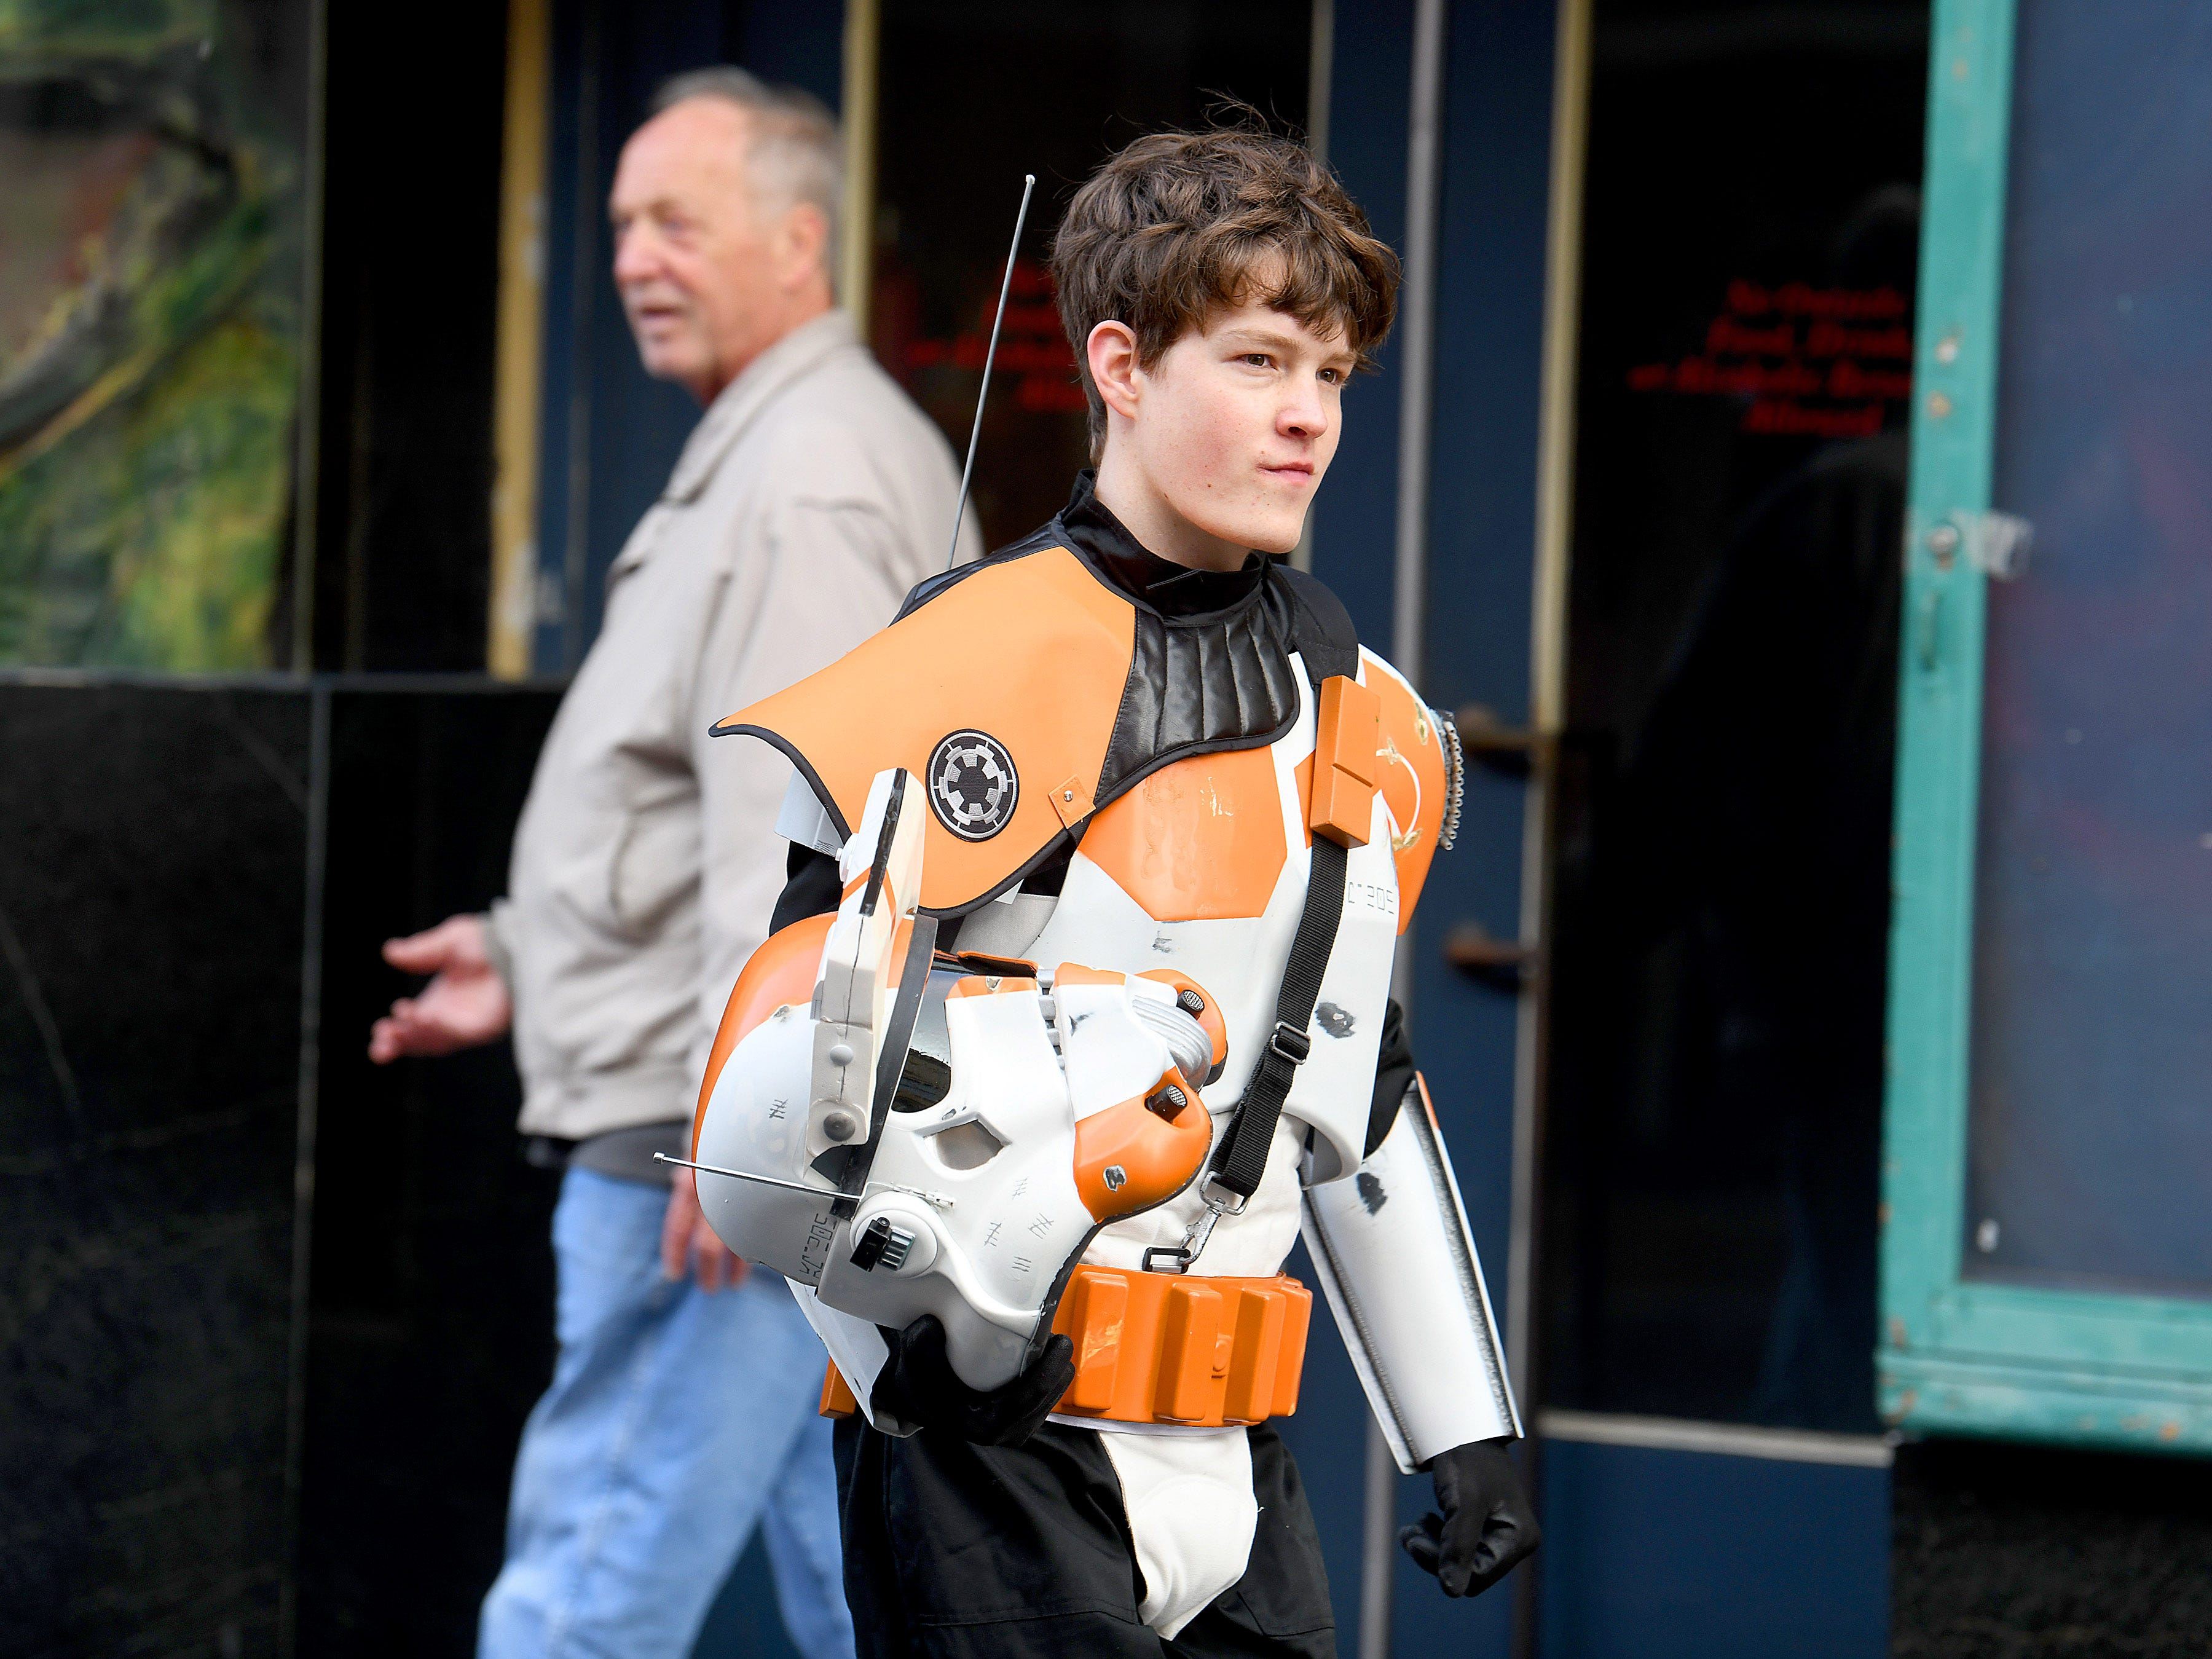 A young Stormtrooper walks the street during the annual downtown trick-or-treating event in Staunton on Saturday, Oct. 27, 2018.